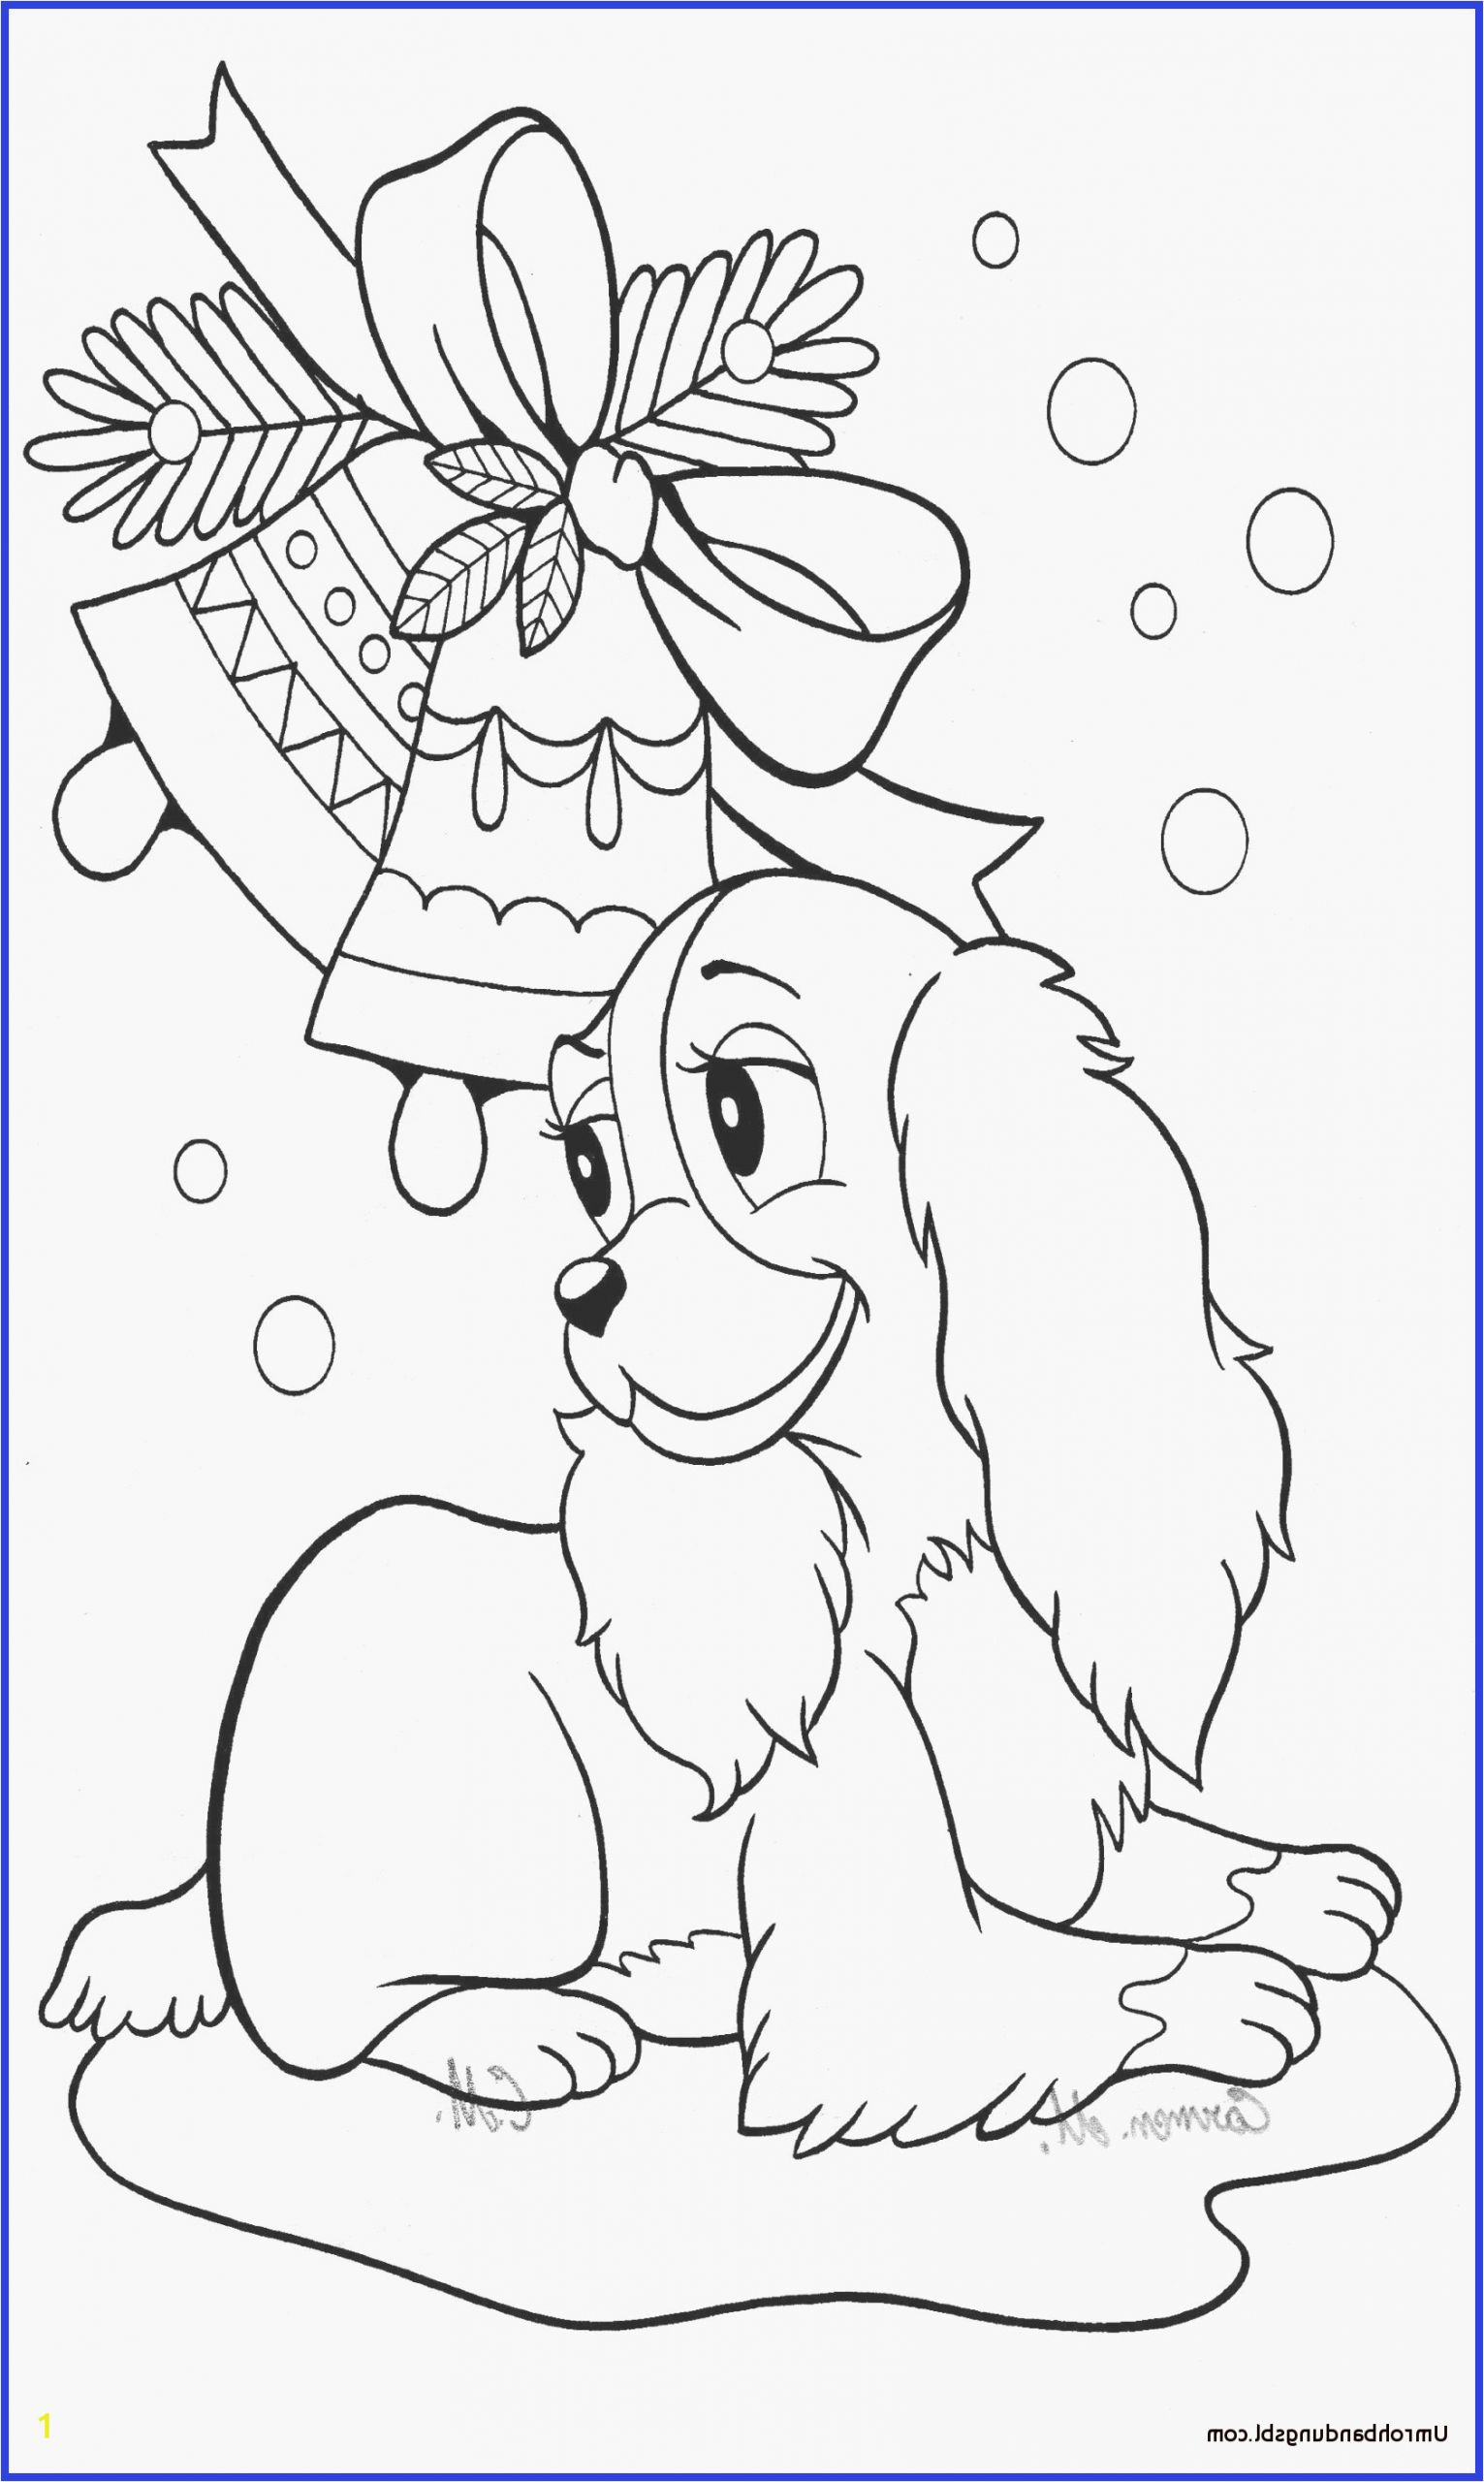 coloring page for free to print awesome image schon free printable anime coloring pages umrohbandungsbl of coloring page for free to print